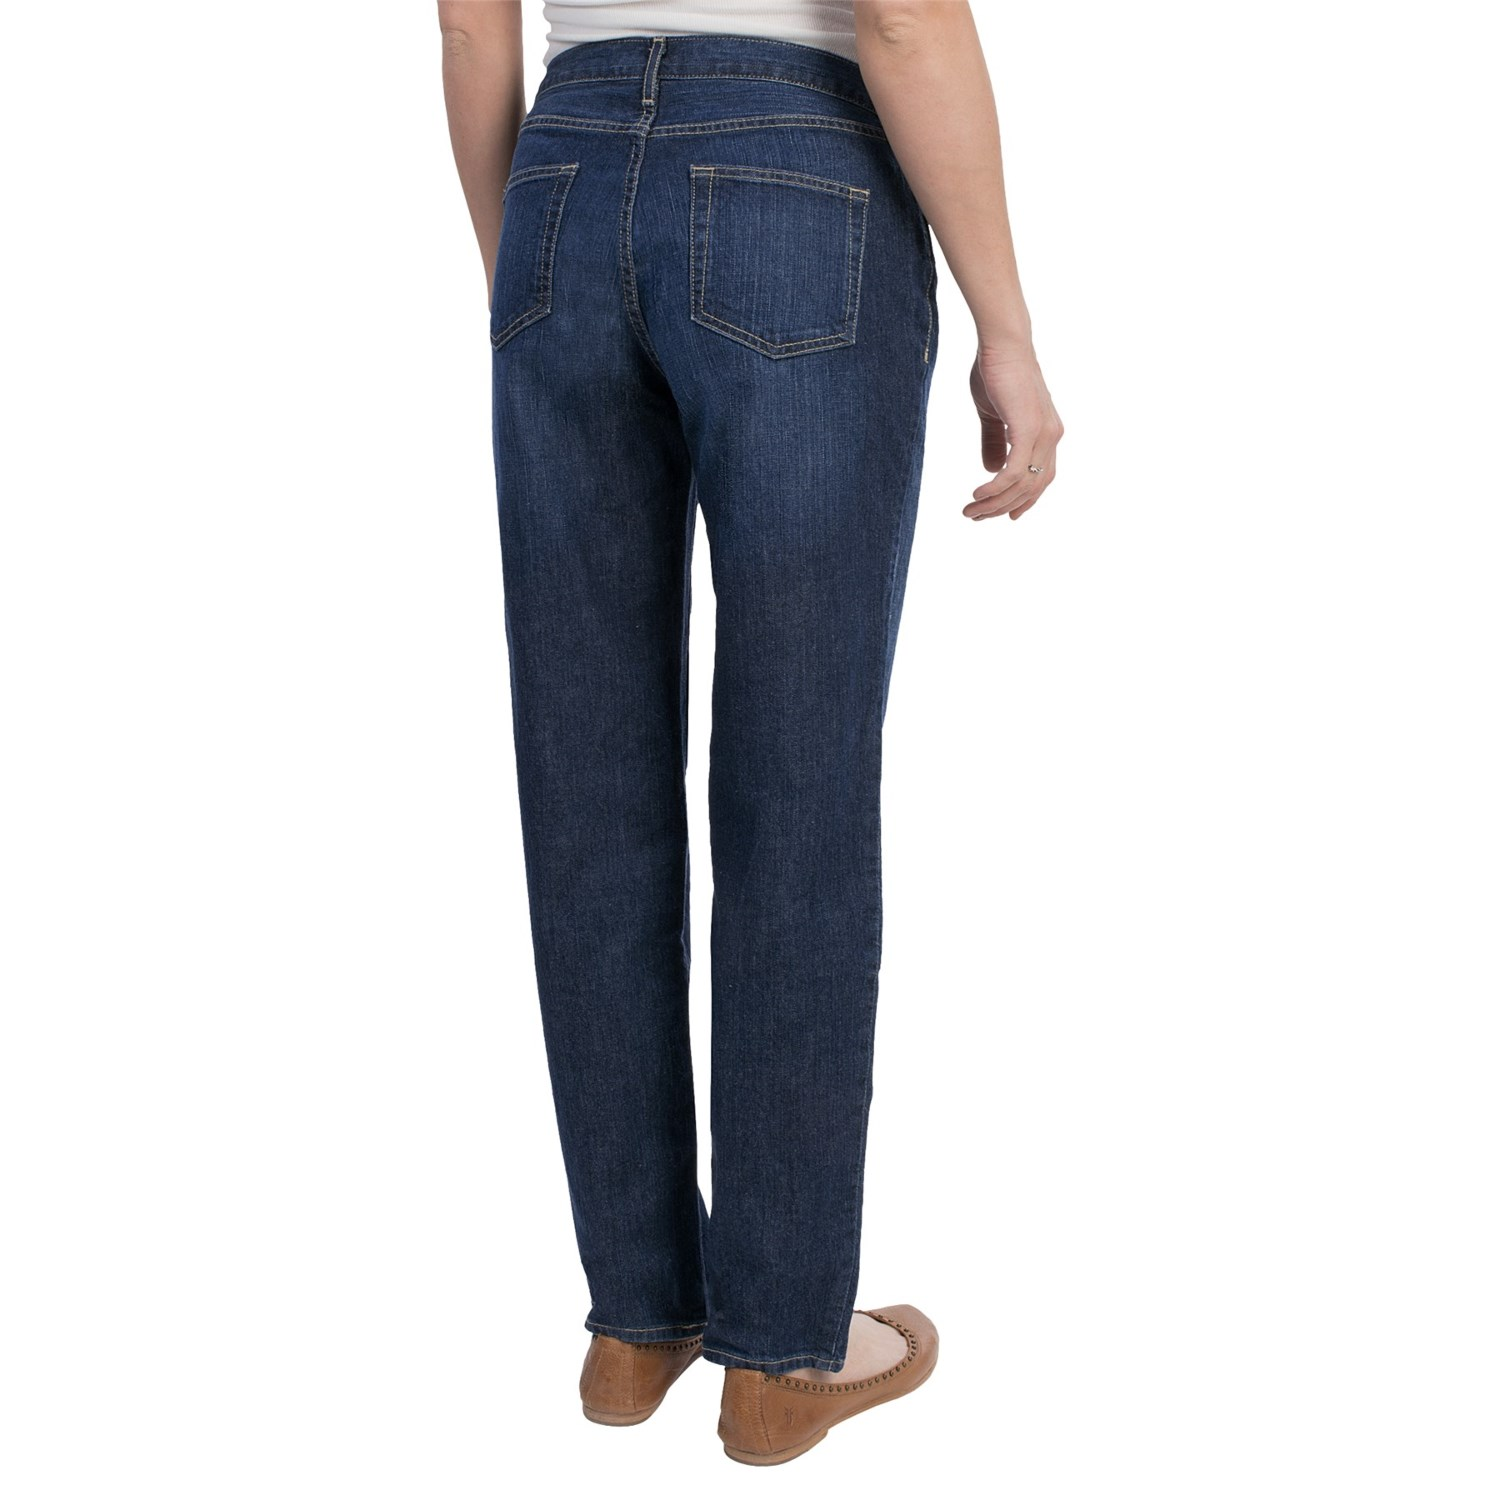 Shop distressed denim, now available in plus sizes, at loadingbassqz.cf! Find fashion-forward items and dangerously good deals.